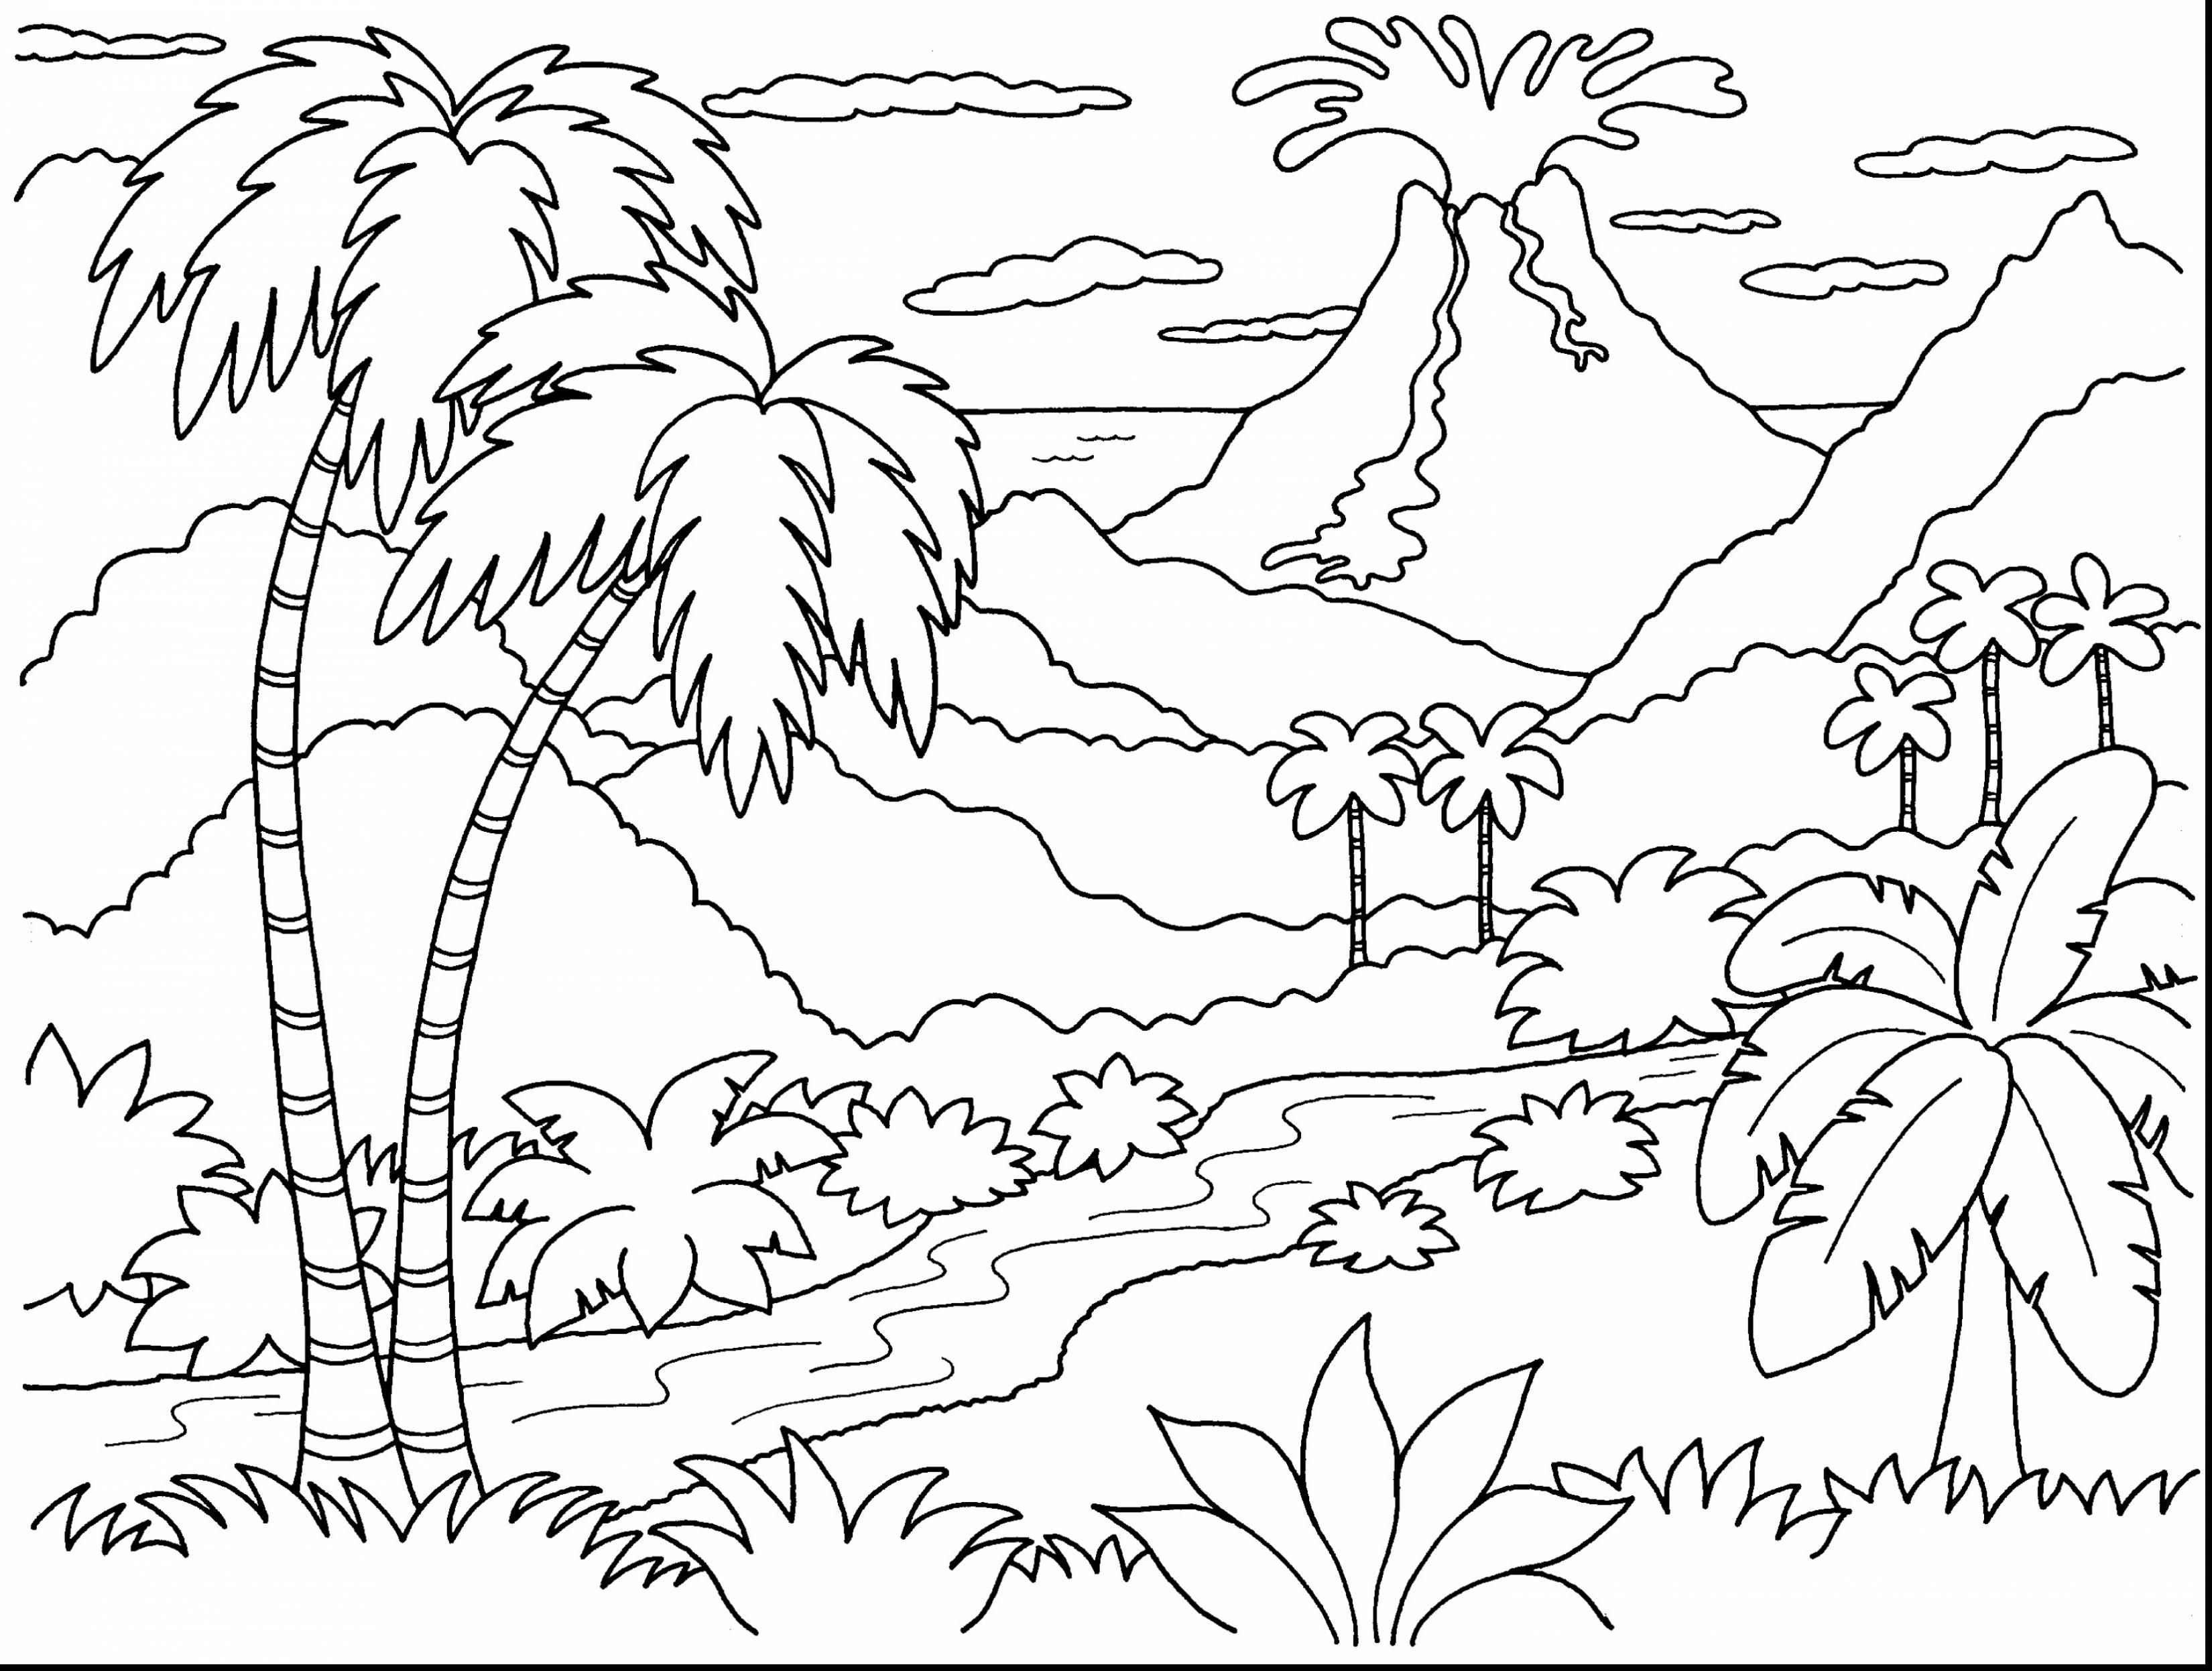 Remarkable Volcano Island Coloring Page With Volcano Coloring